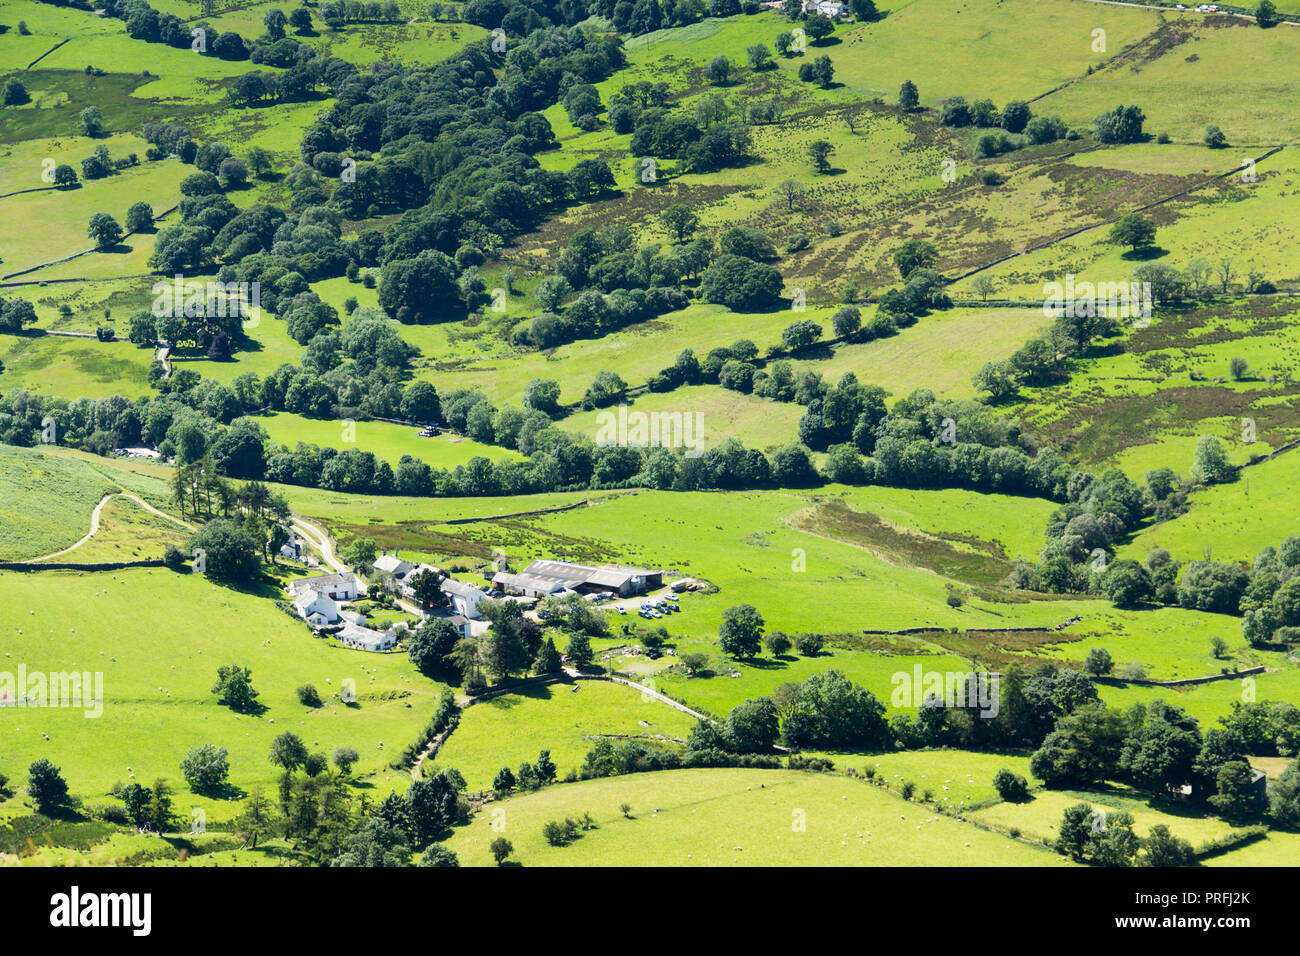 From the summit of Cat Bells,  looking down on the hamlet of Littletown and fields of green in Newlands valley Cumbria. Stock Photo